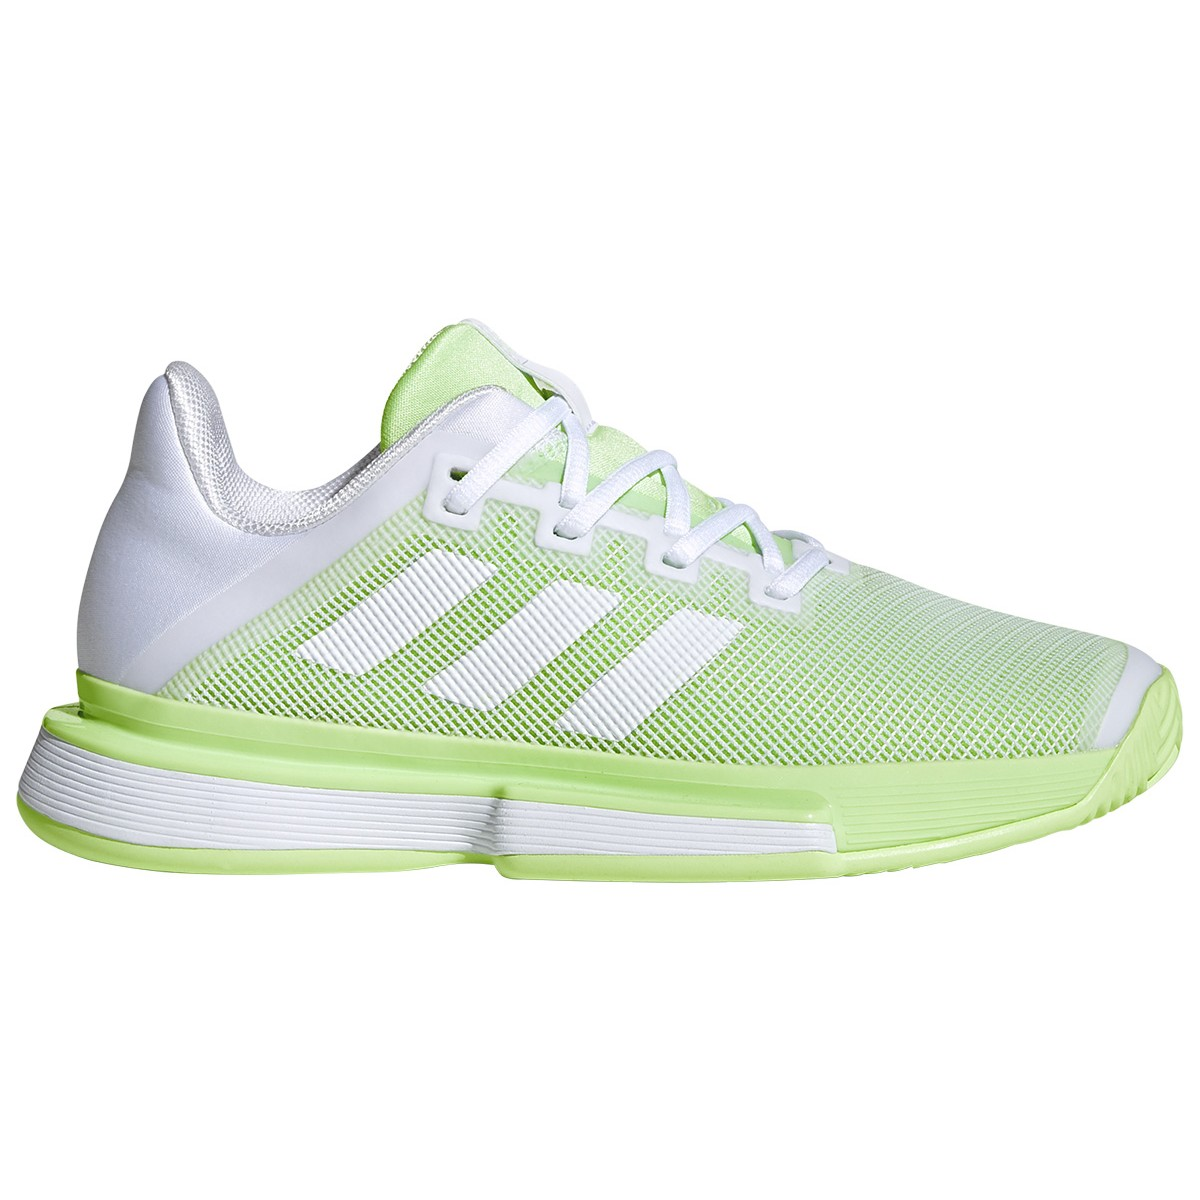 Solematch Bounce Toutes Chaussures Femme Adidas Surfaces 7ygbvfY6